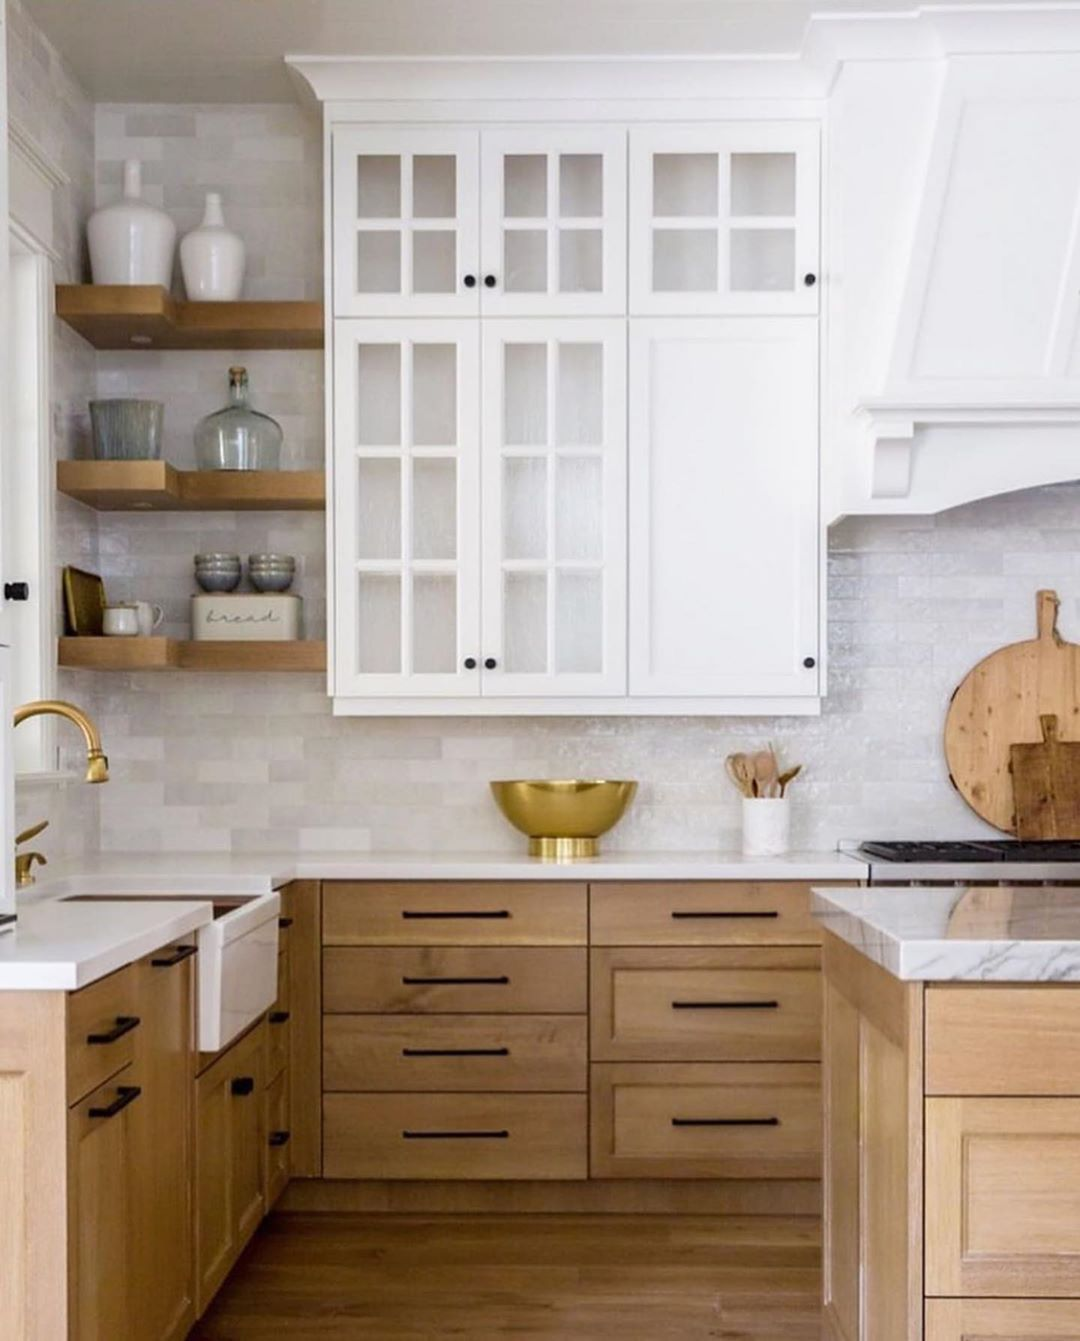 Wood Toned Kitchens We Are Loving Right Now Swipe To See Them All Which Is You Scandinavian Kitchen Design Modern Wood Kitchen Kitchen Renovation